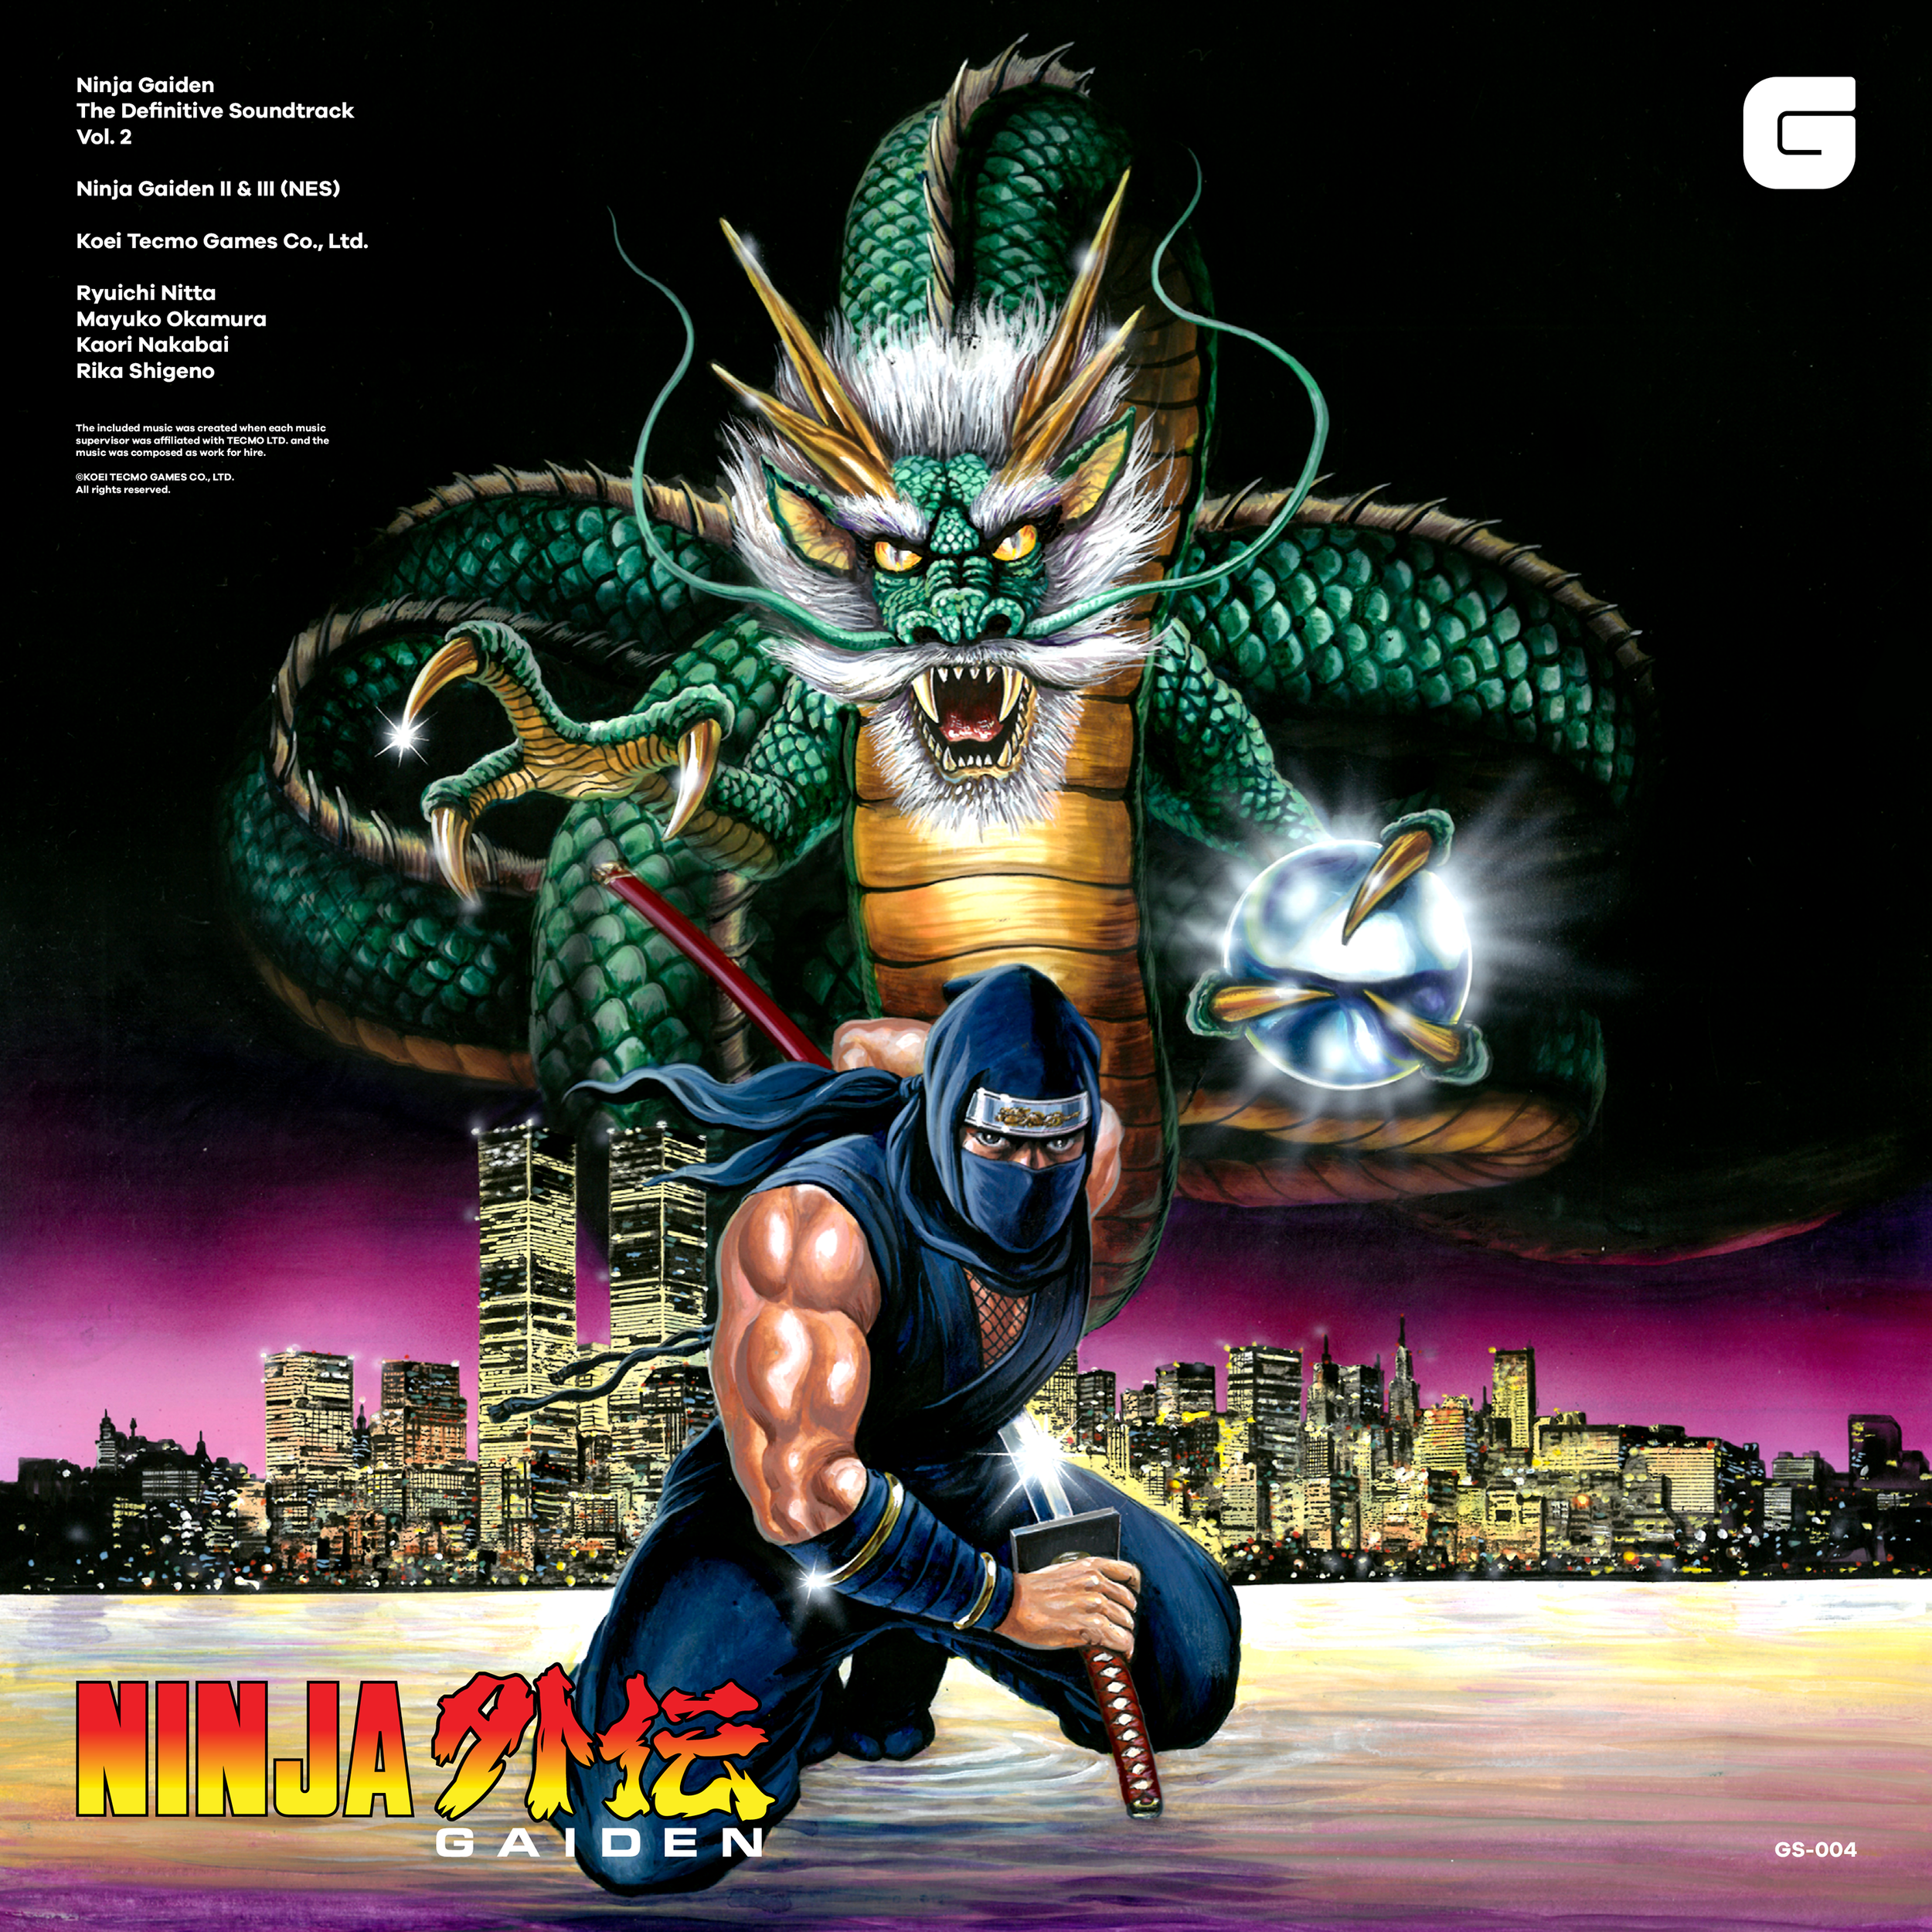 Ninja Gaiden The Definitive Soundtrack Vol. 2 CD: $15 / LP: $35